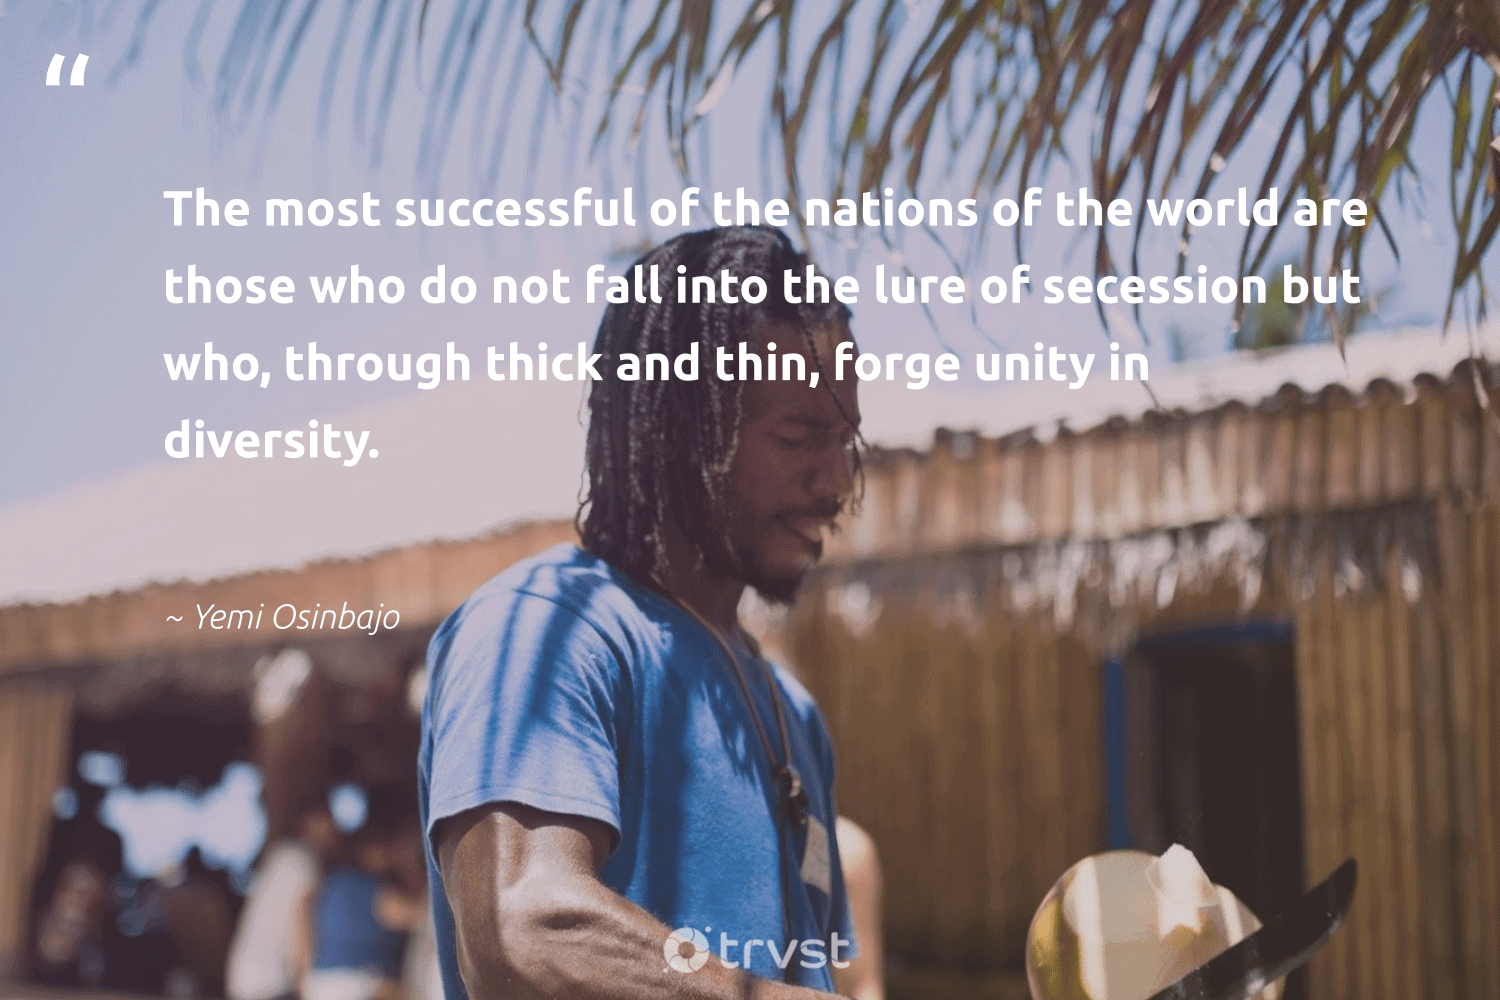 """""""The most successful of the nations of the world are those who do not fall into the lure of secession but who, through thick and thin, forge unity in diversity.""""  - Yemi Osinbajo #trvst #quotes #diversity #representationmatters #discrimination #weareallone #giveback #dogood #inclusion #socialgood #makeadifference #bethechange"""